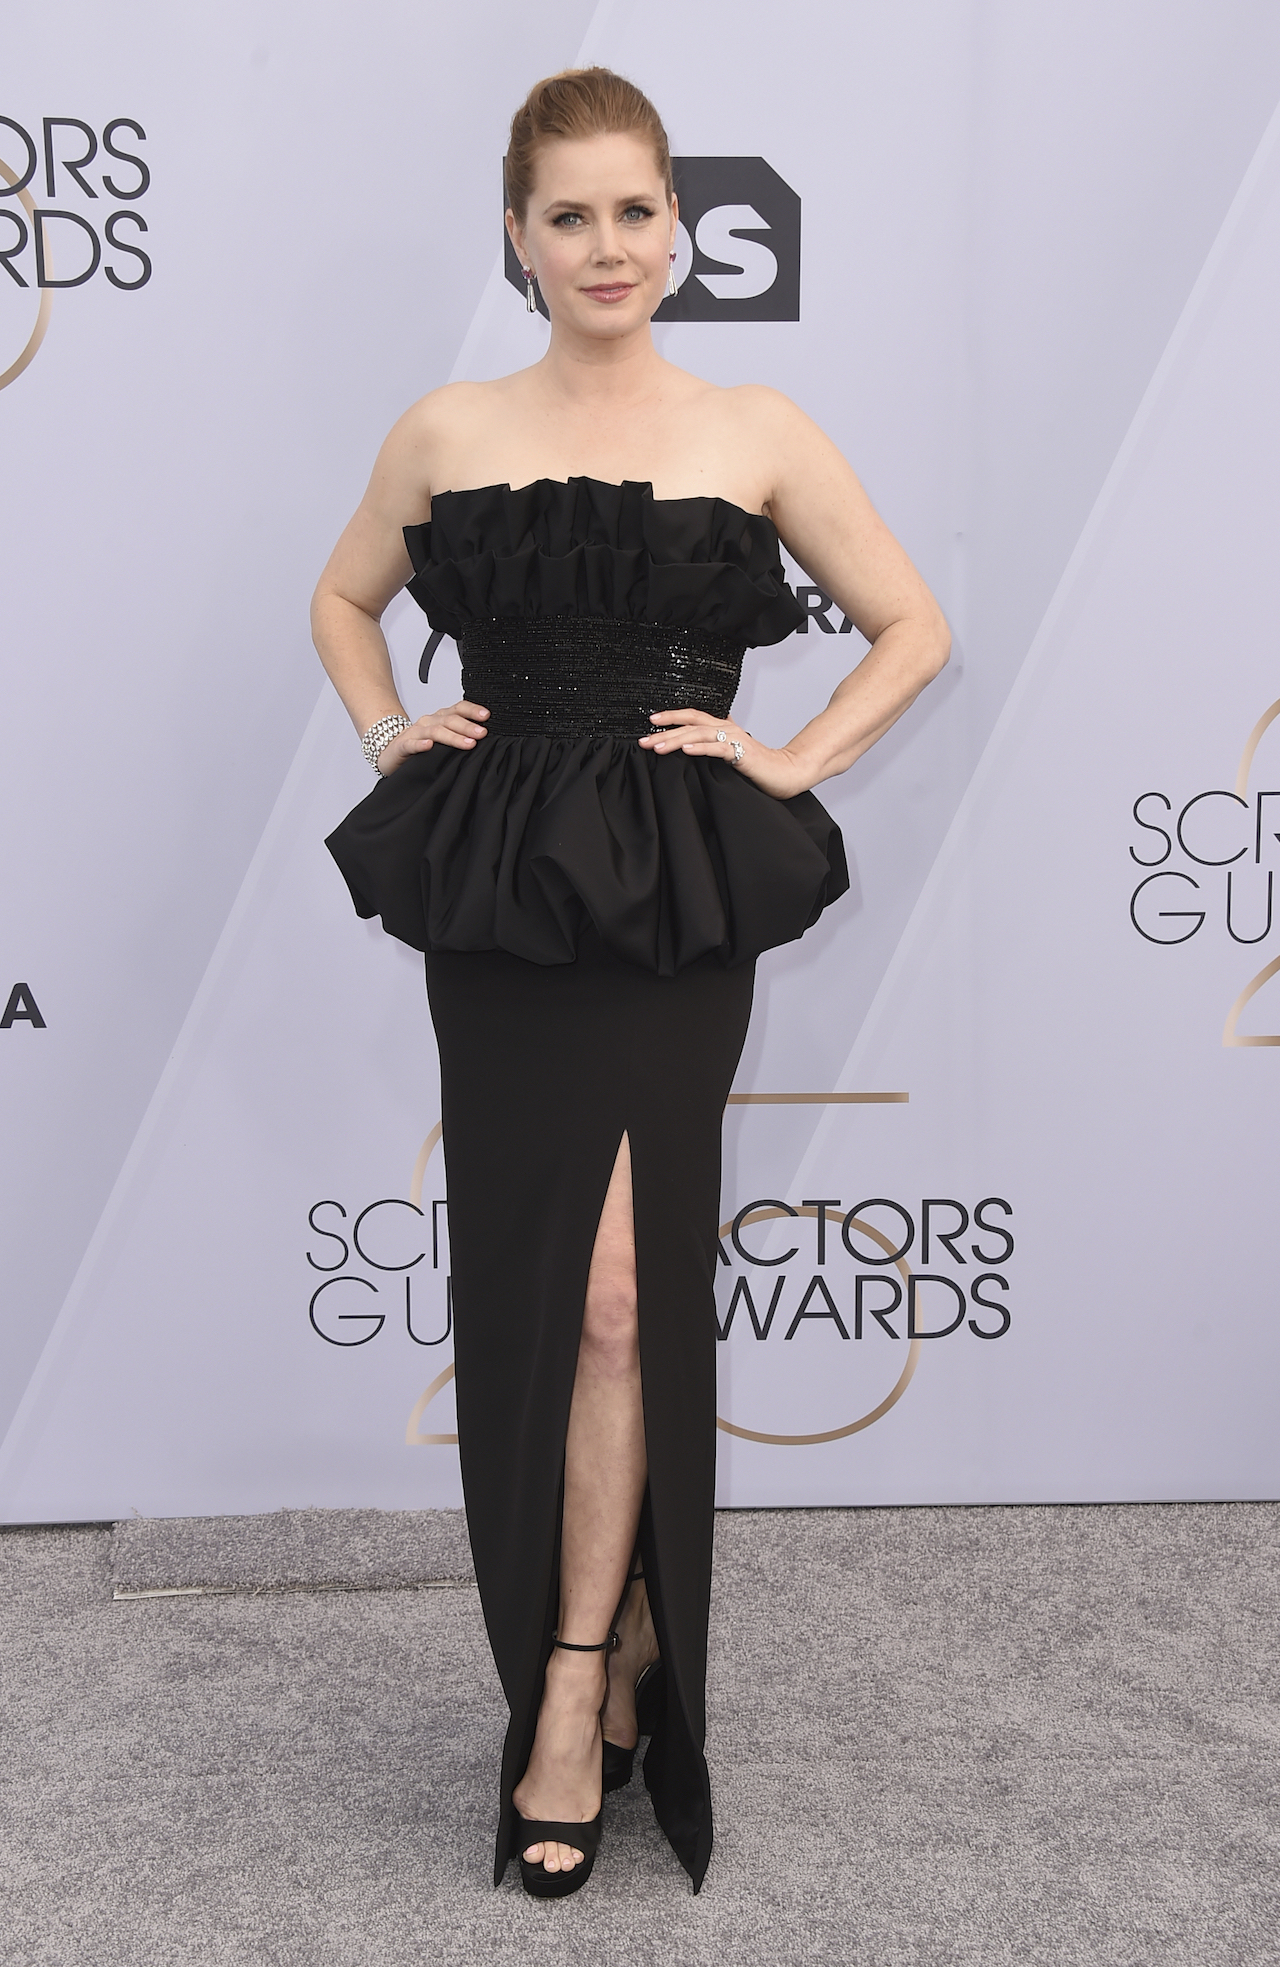 "<div class=""meta image-caption""><div class=""origin-logo origin-image ap""><span>AP</span></div><span class=""caption-text"">Amy Adams arrives at the 25th annual Screen Actors Guild Awards at the Shrine Auditorium & Expo Hall on Sunday, Jan. 27, 2019, in Los Angeles. (Jordan Strauss/Invision/AP)</span></div>"